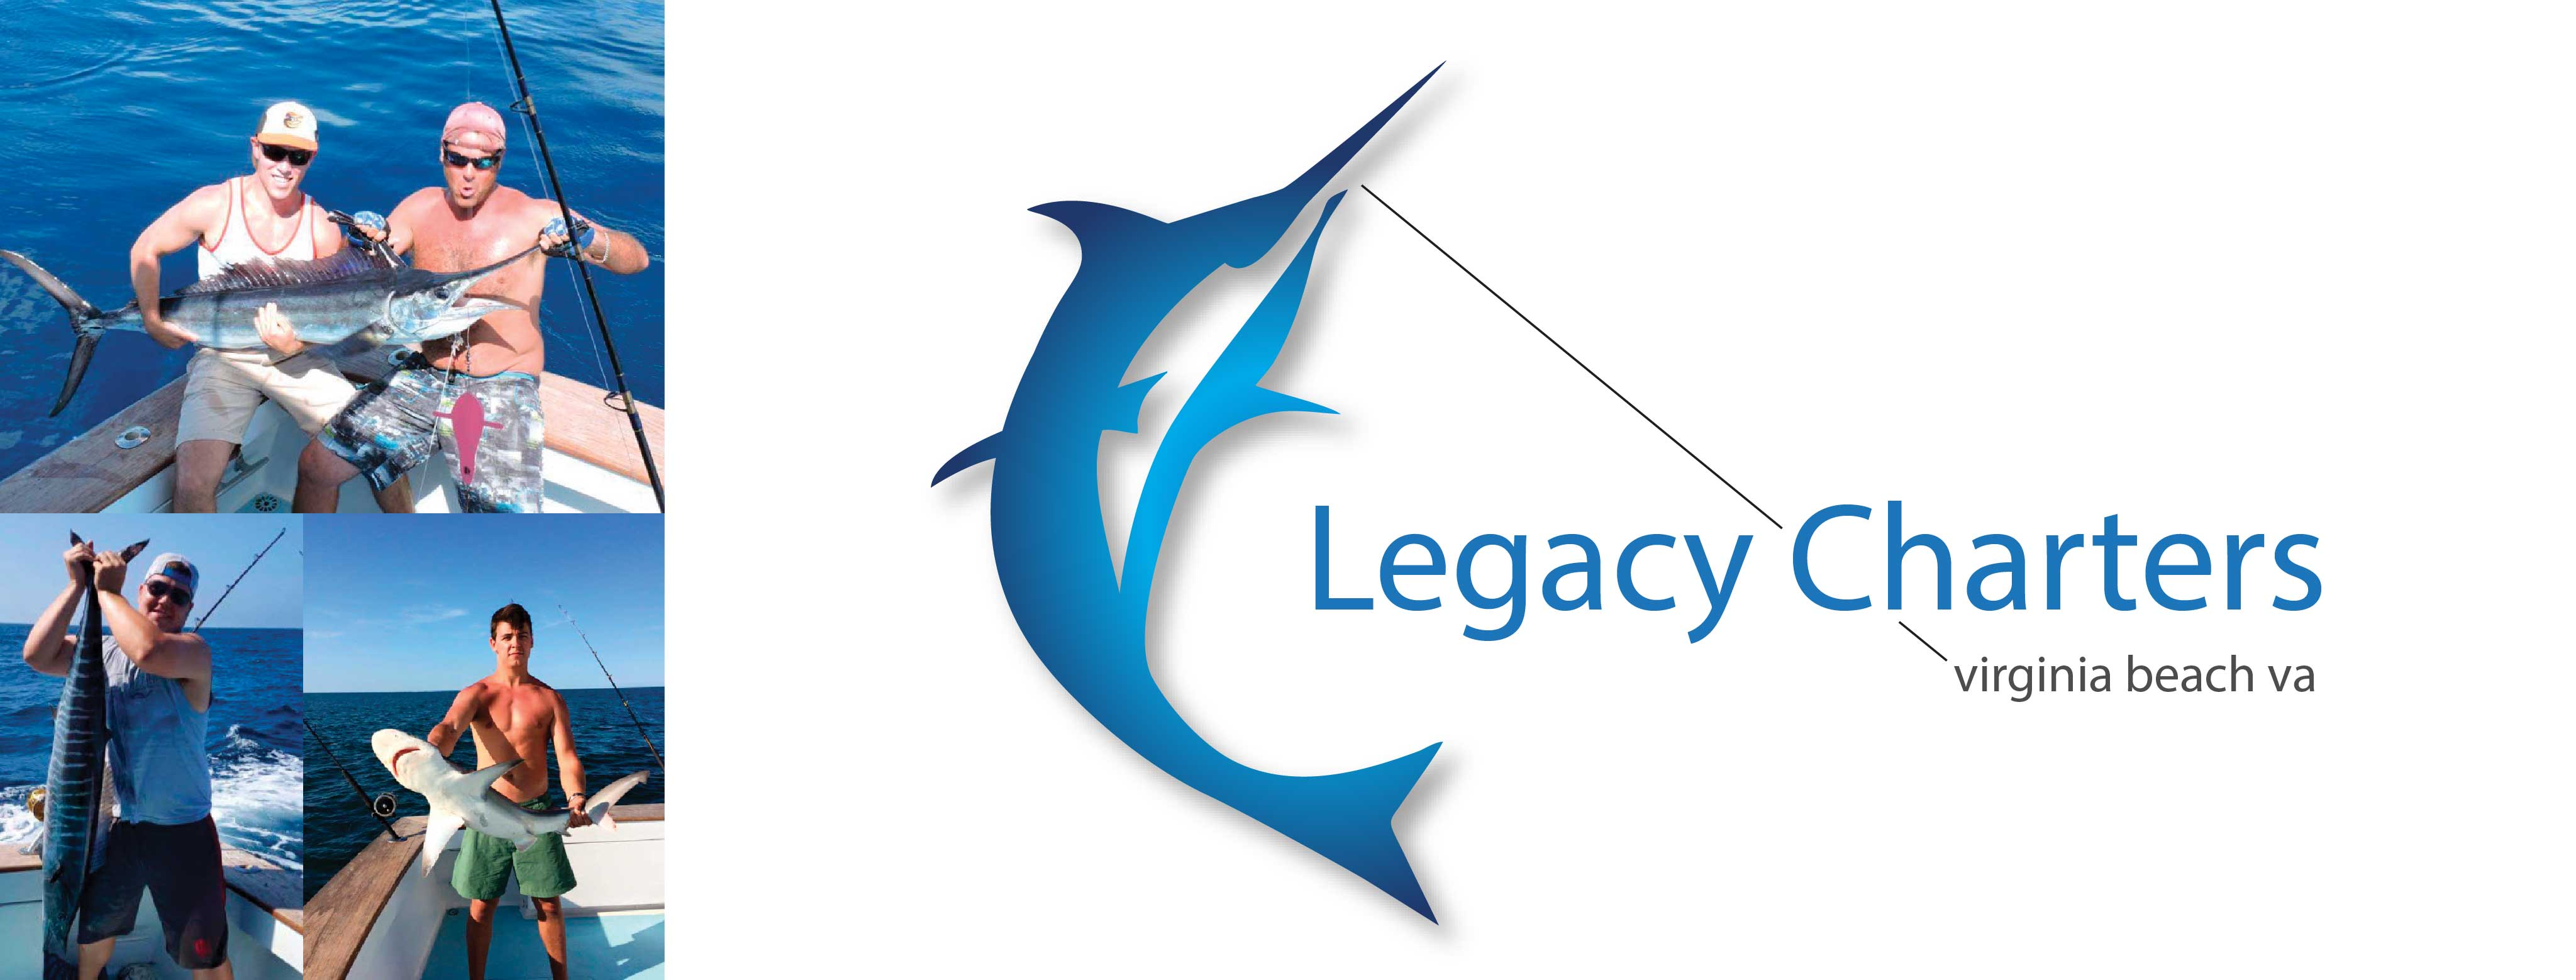 Legacy Charters | Fishing in Rudee Inlet Station Marina - Virginia Beach VA - Reviews - Photos - Phone Number